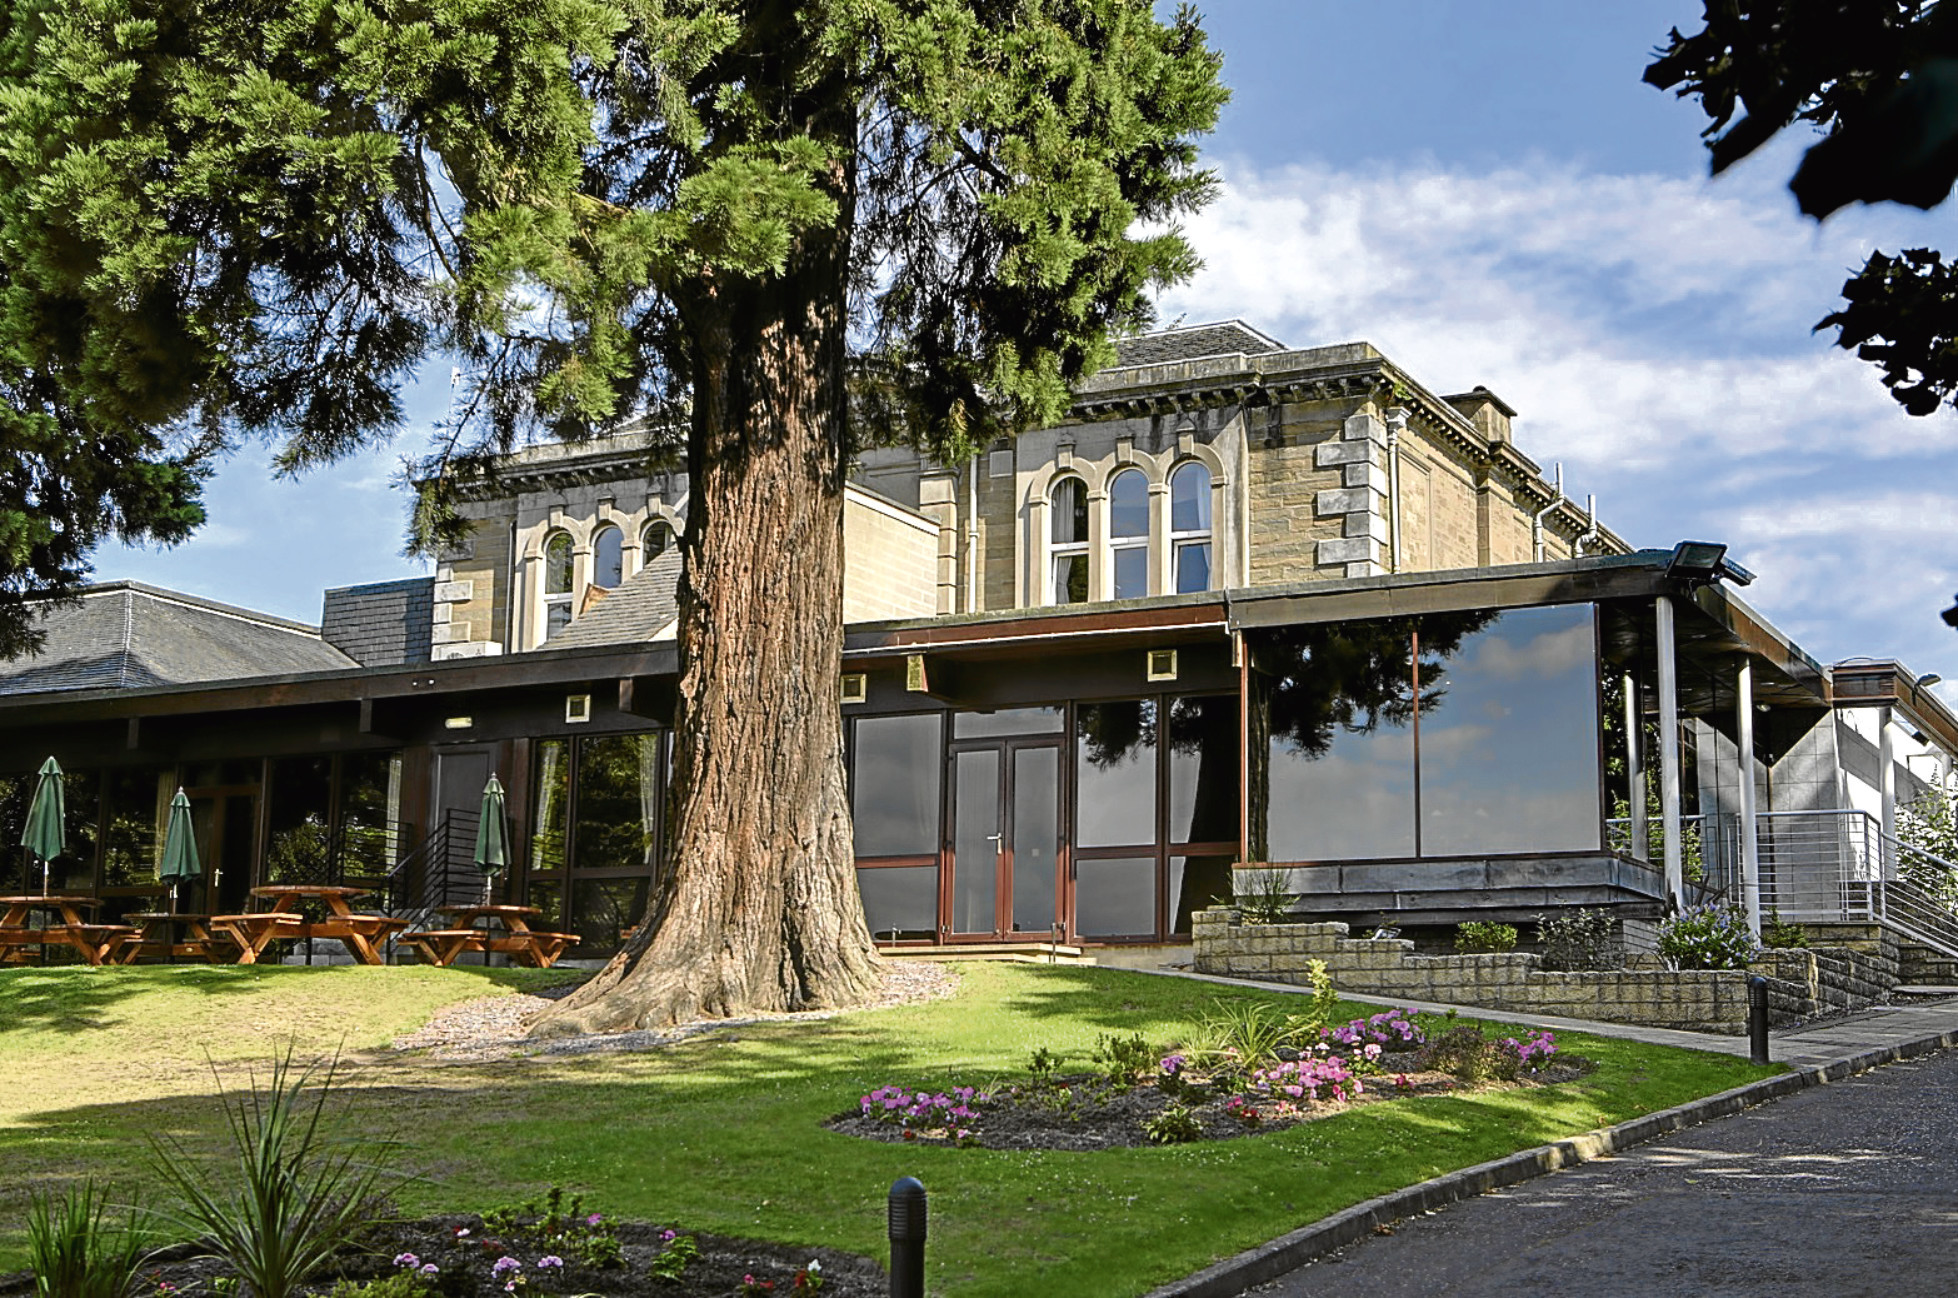 The extension adds 24 rooms to the Invercarse Hotel.